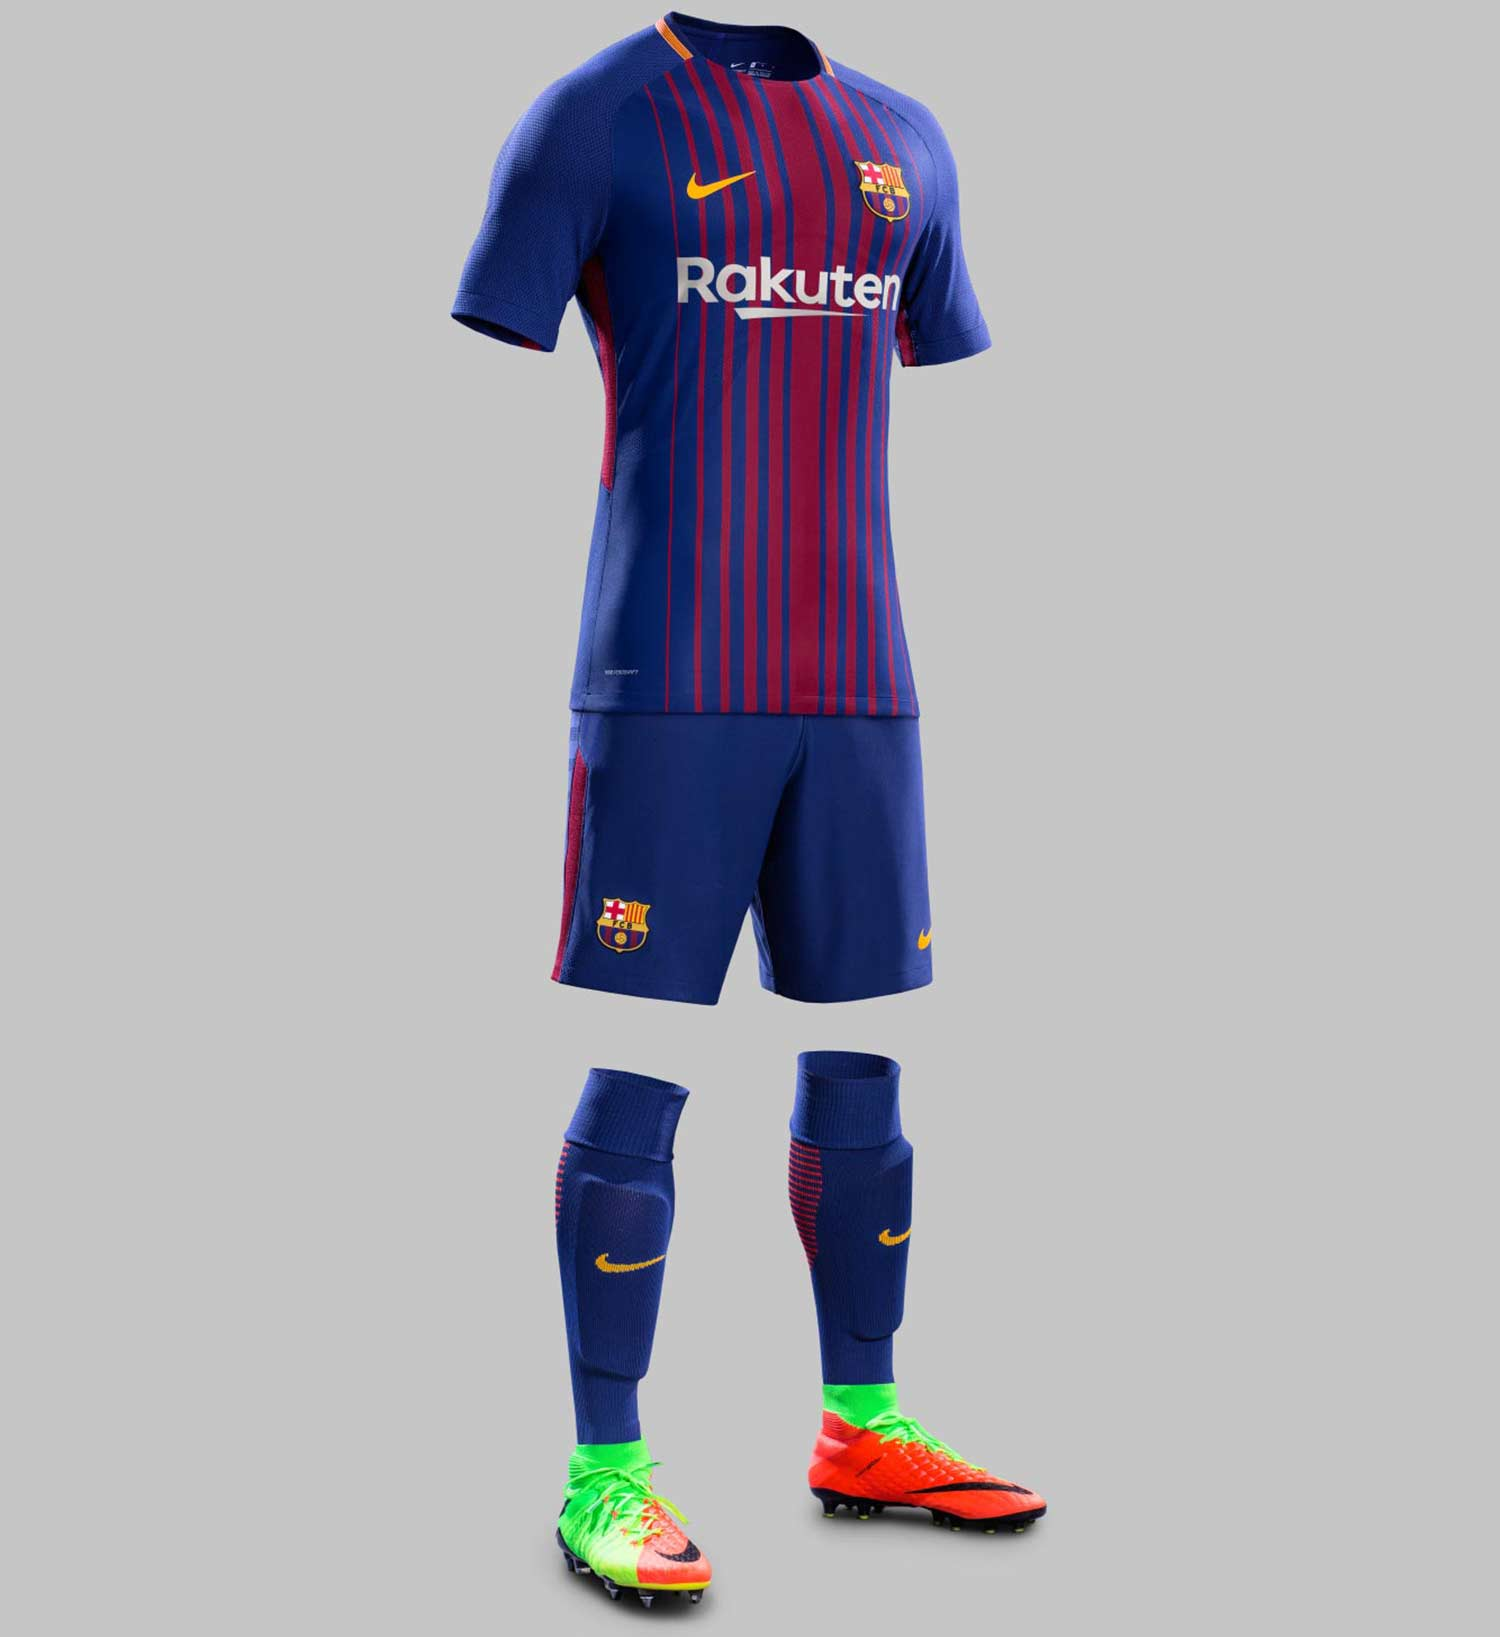 new concept 7e7a2 16b7d 2017-18 kits, jerseys: Arsenal, Manchester United, more ...